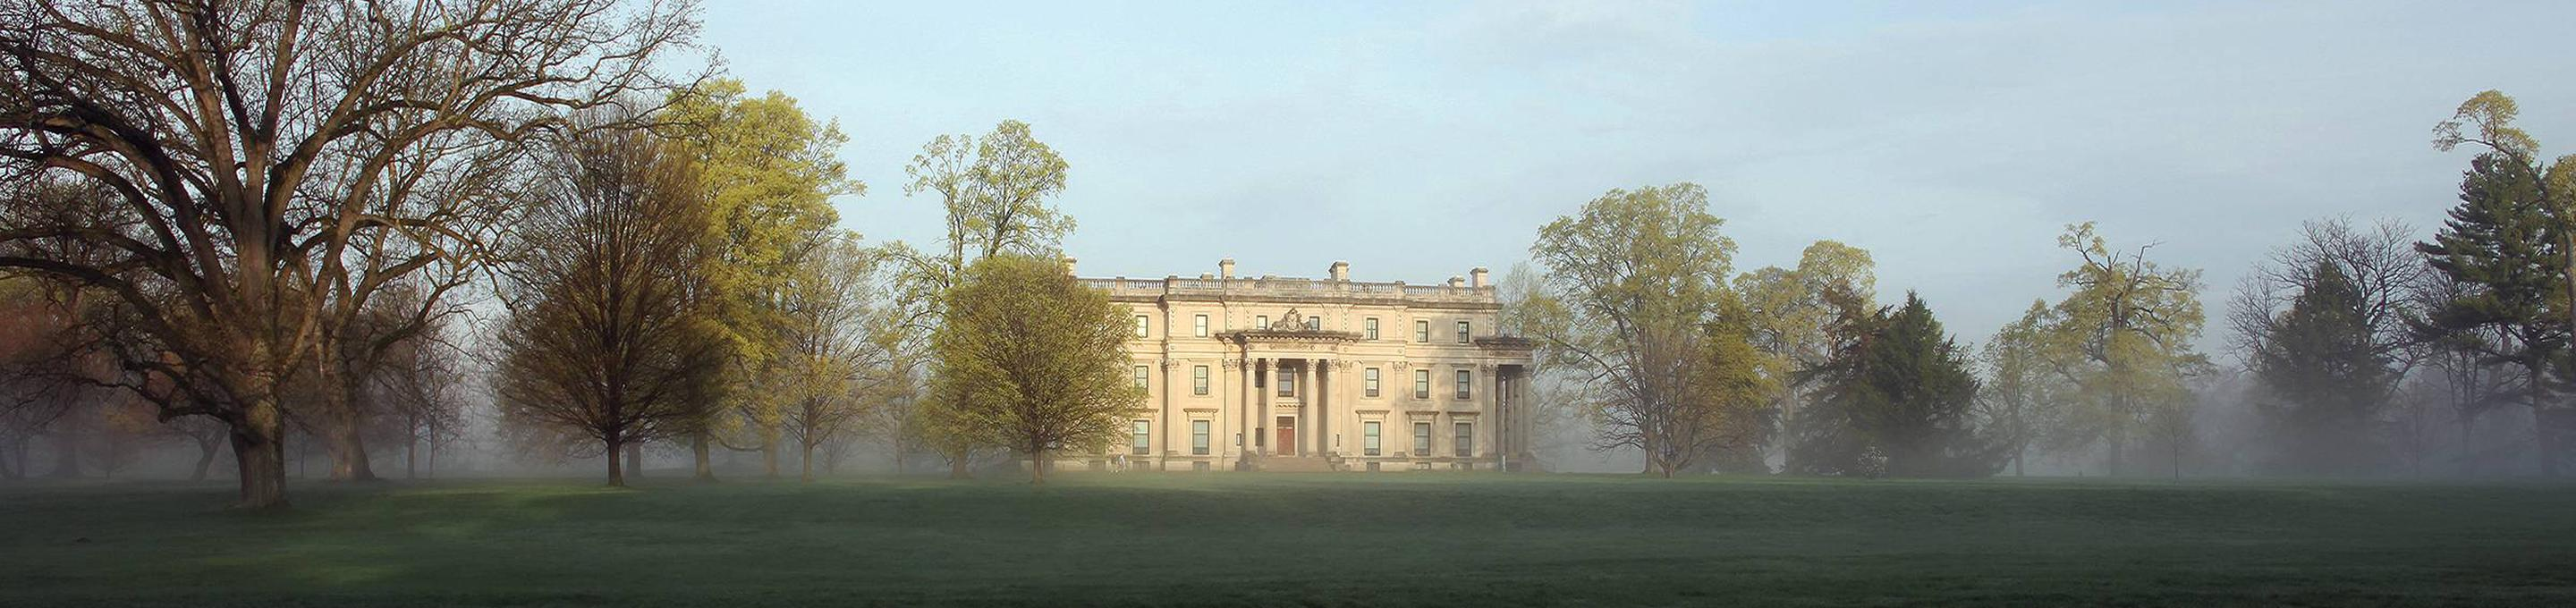 Vanderbilt Mansion on a foggy morning.